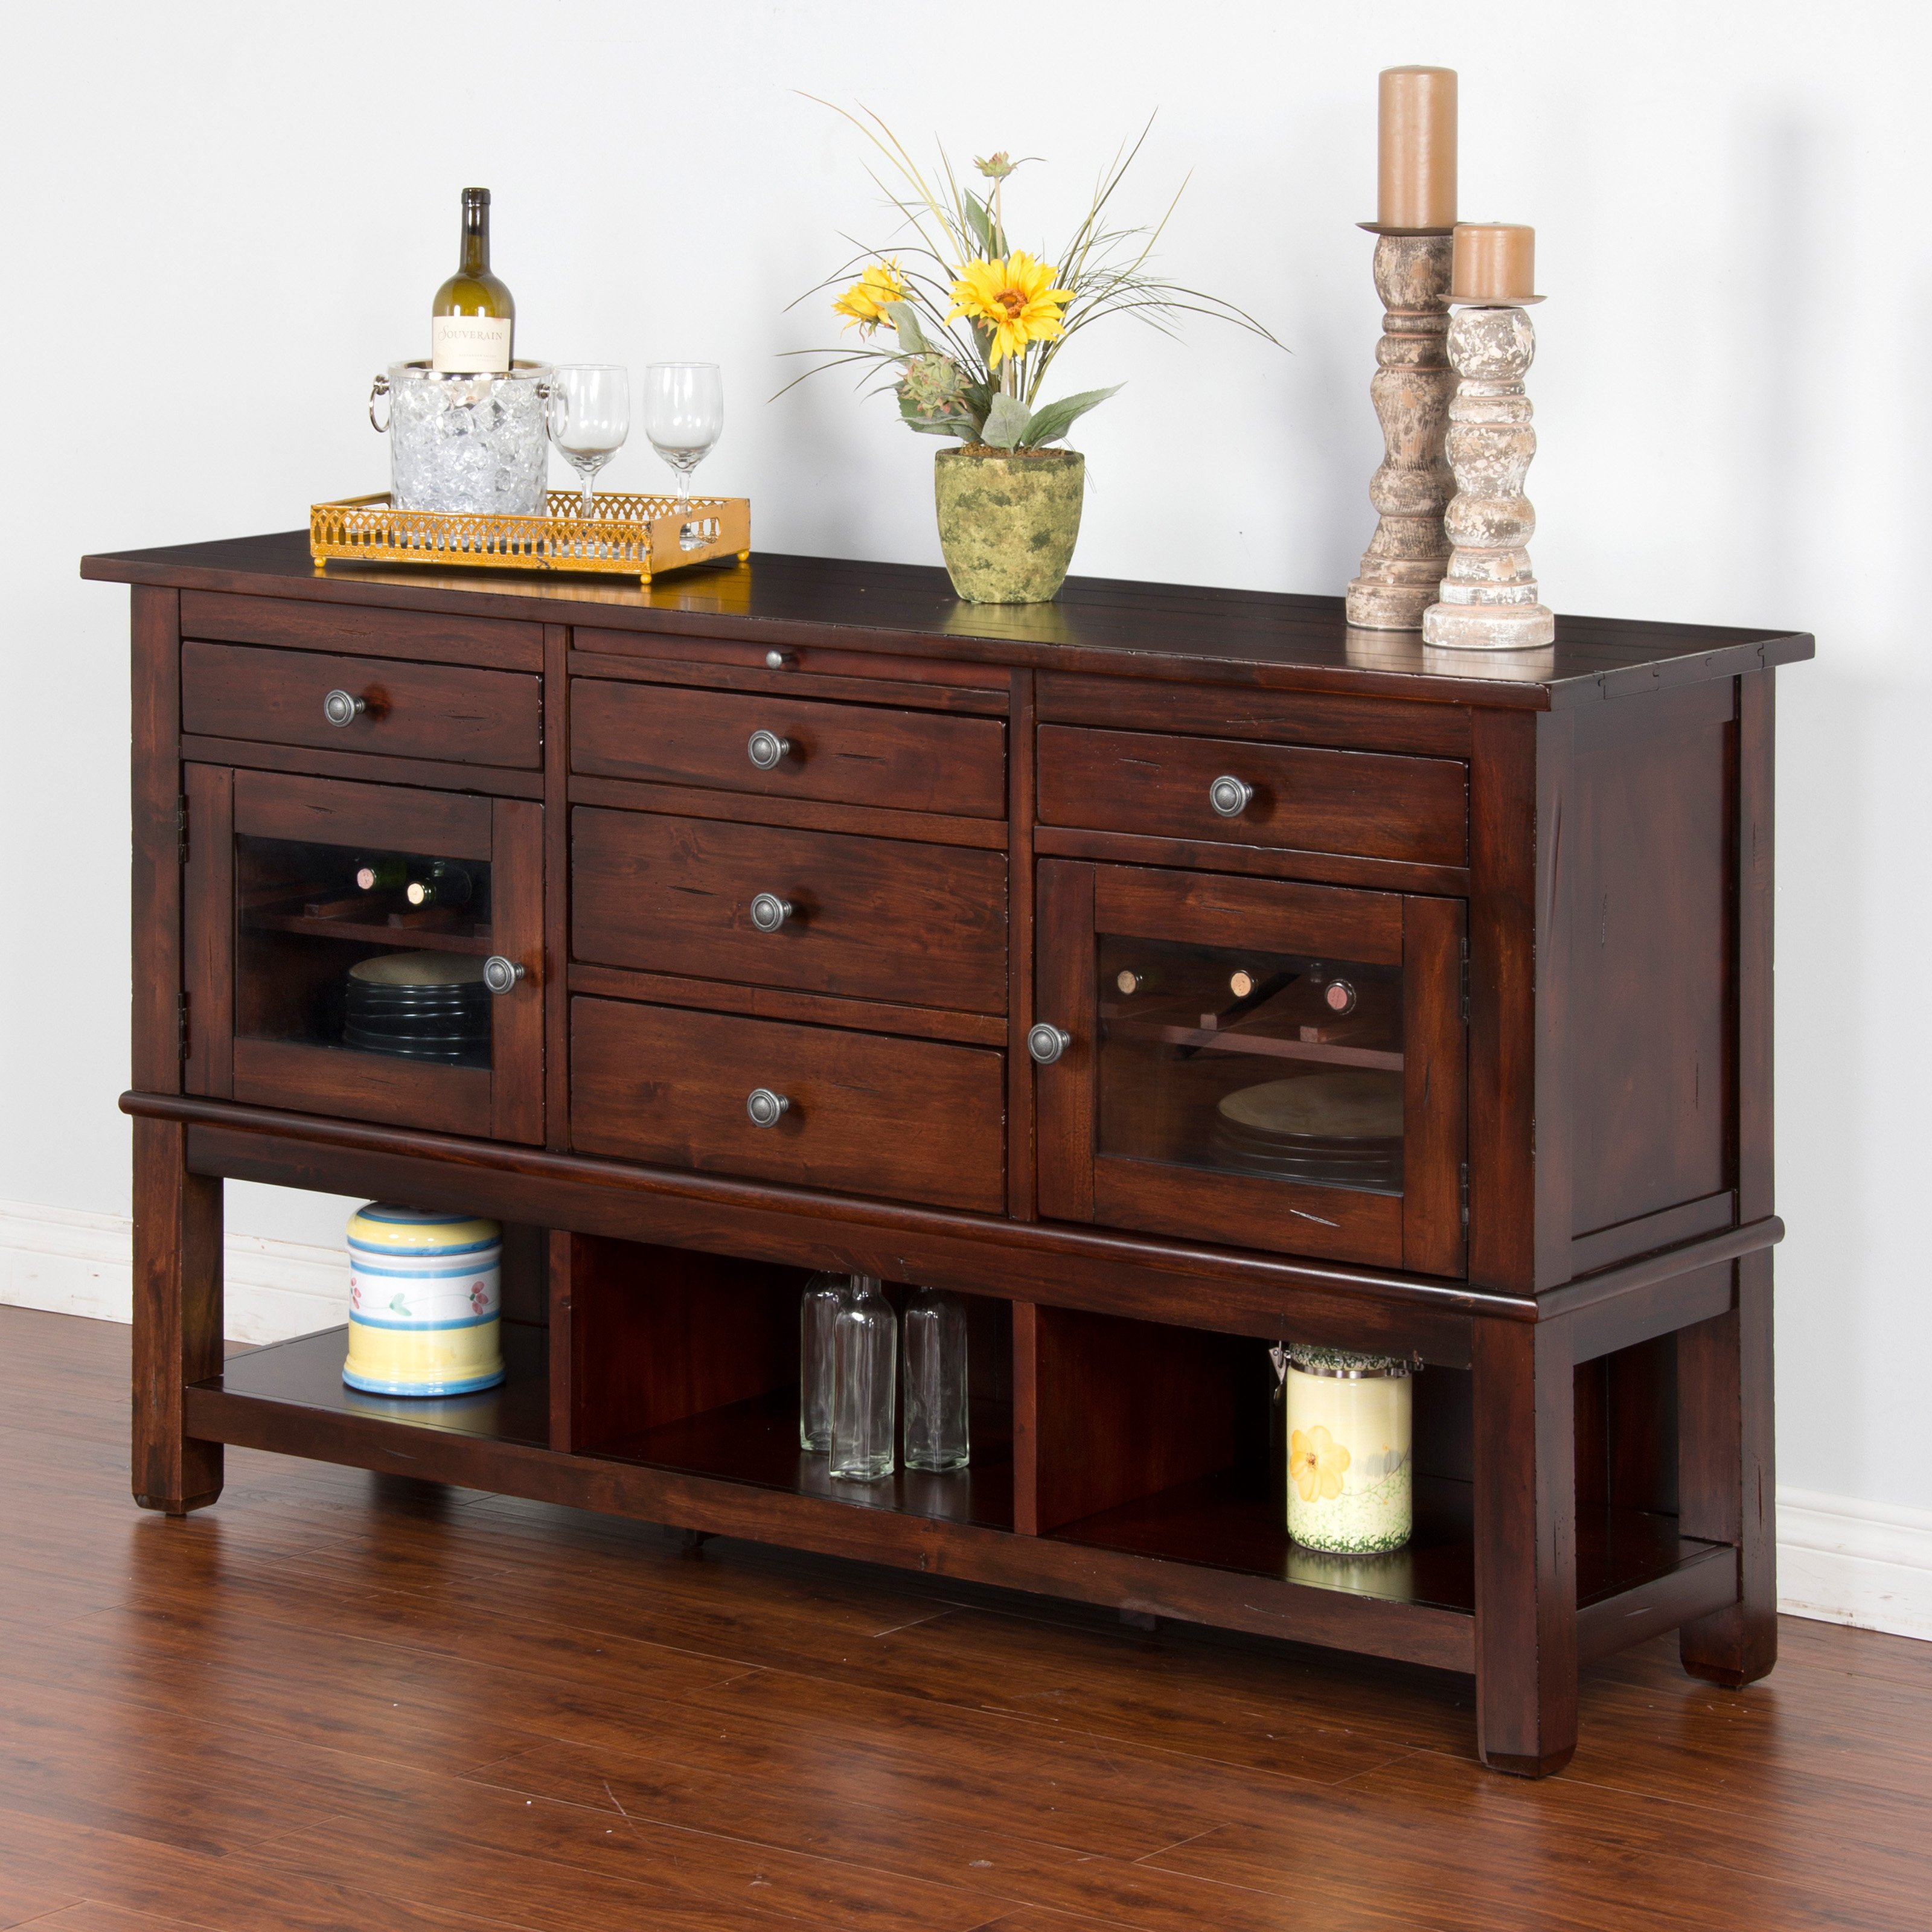 Sunny Designs Vineyard Buffet Server